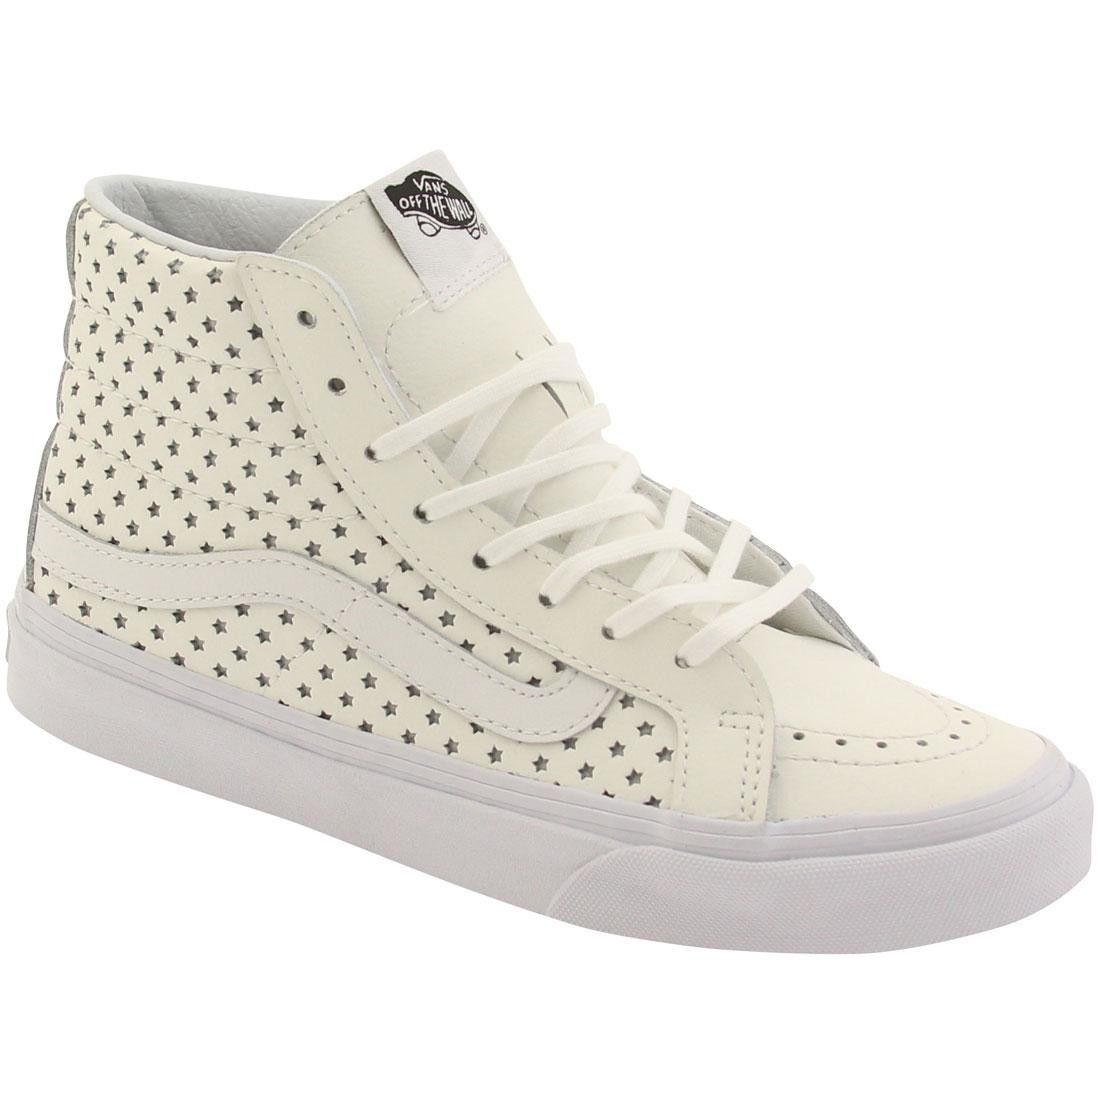 Vans SK8 HI SLIM PERF STARS WHITE Skate Shoes MENS 6.5 WOMENS 8 CLASSICS NIB